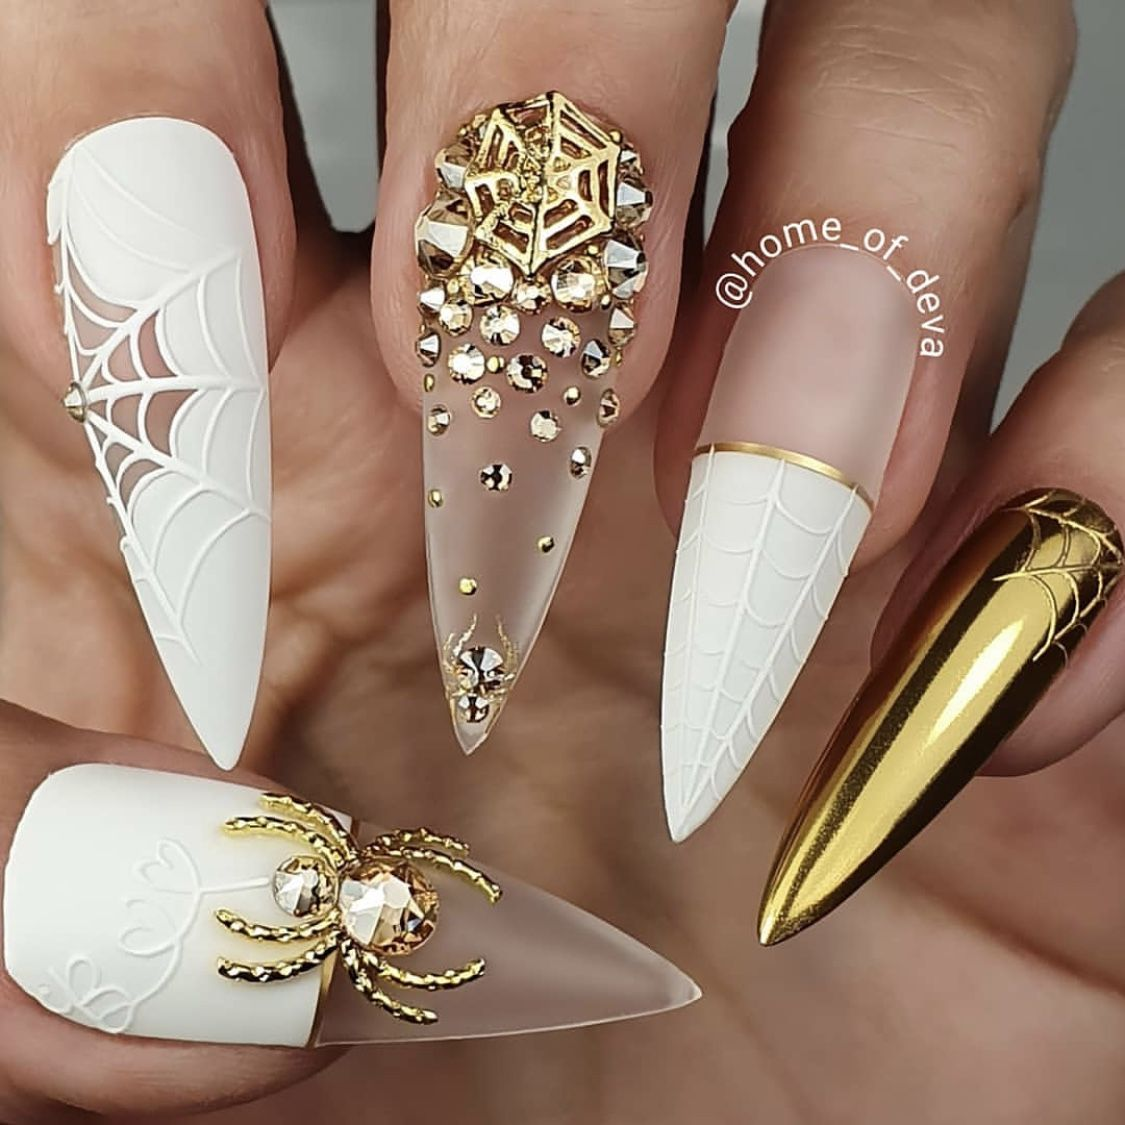 Pin by Lucy on Nails | Halloween nails, Swag nails ...